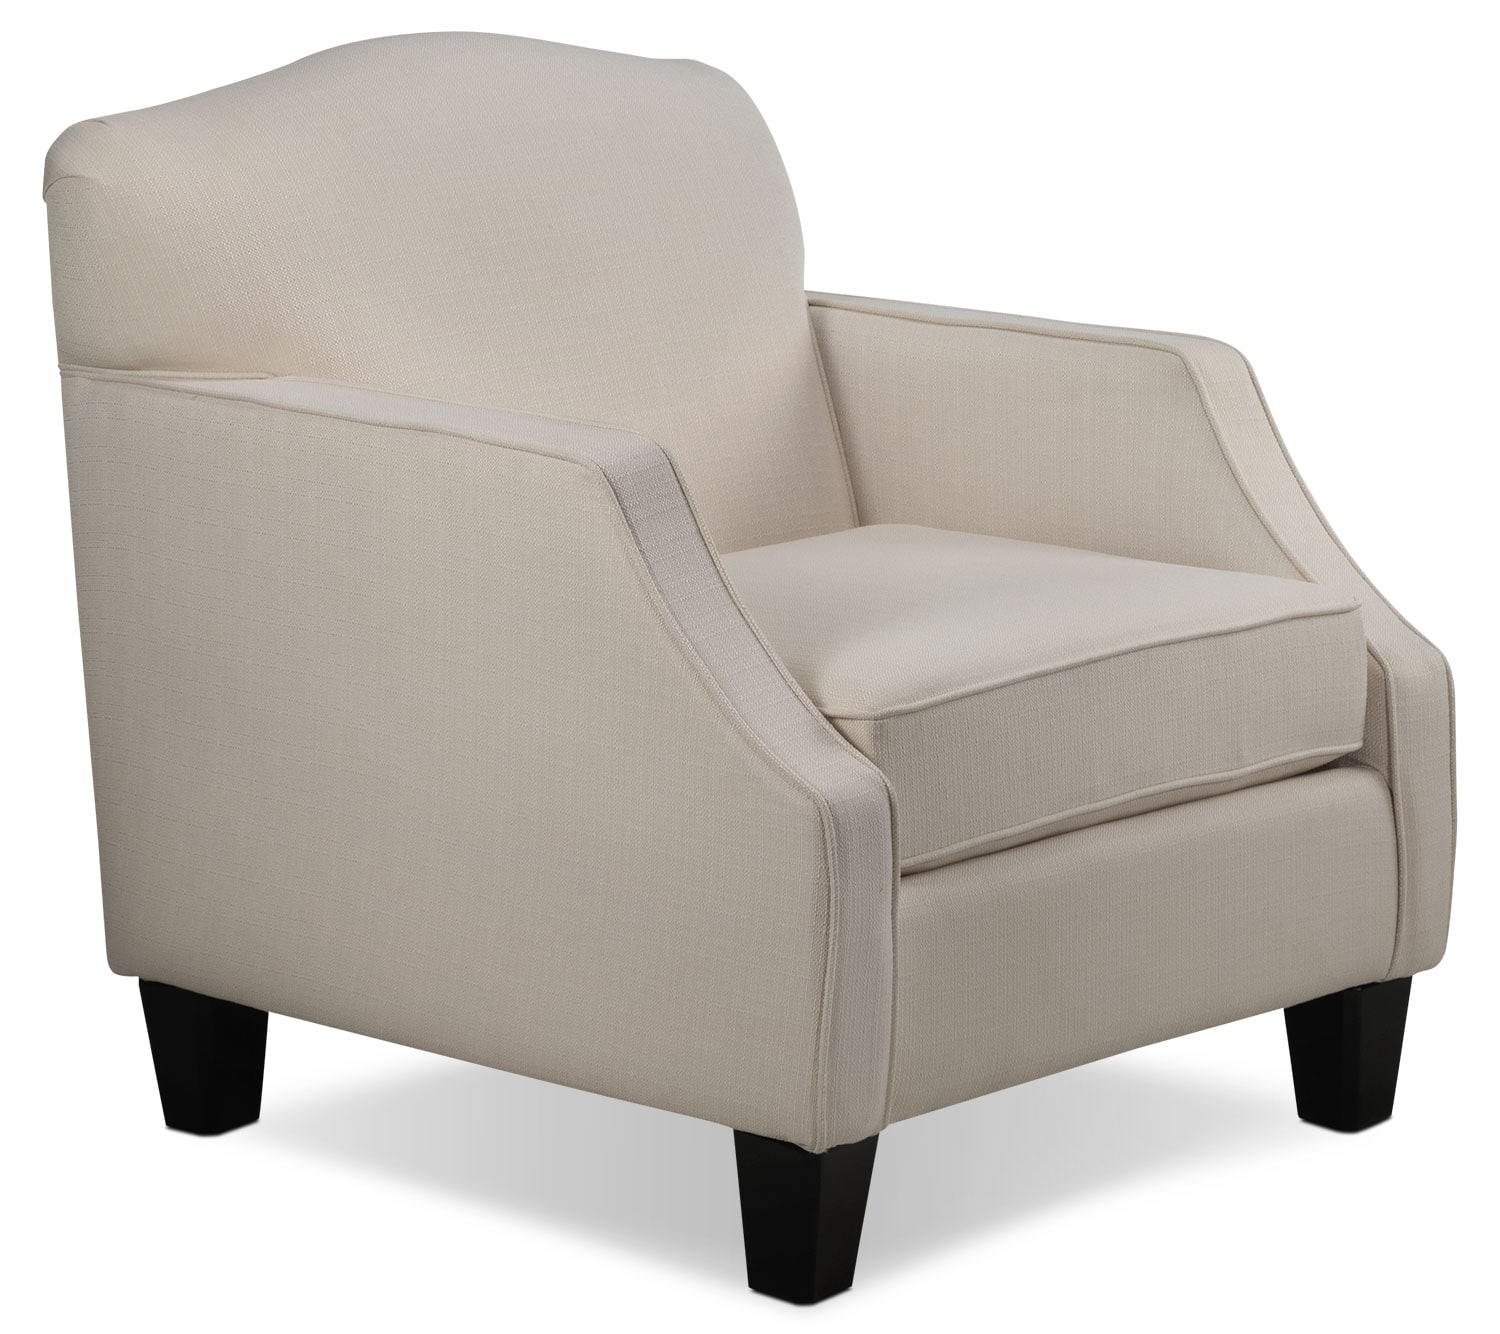 Living Room Furniture - Klein Chair - Ivory